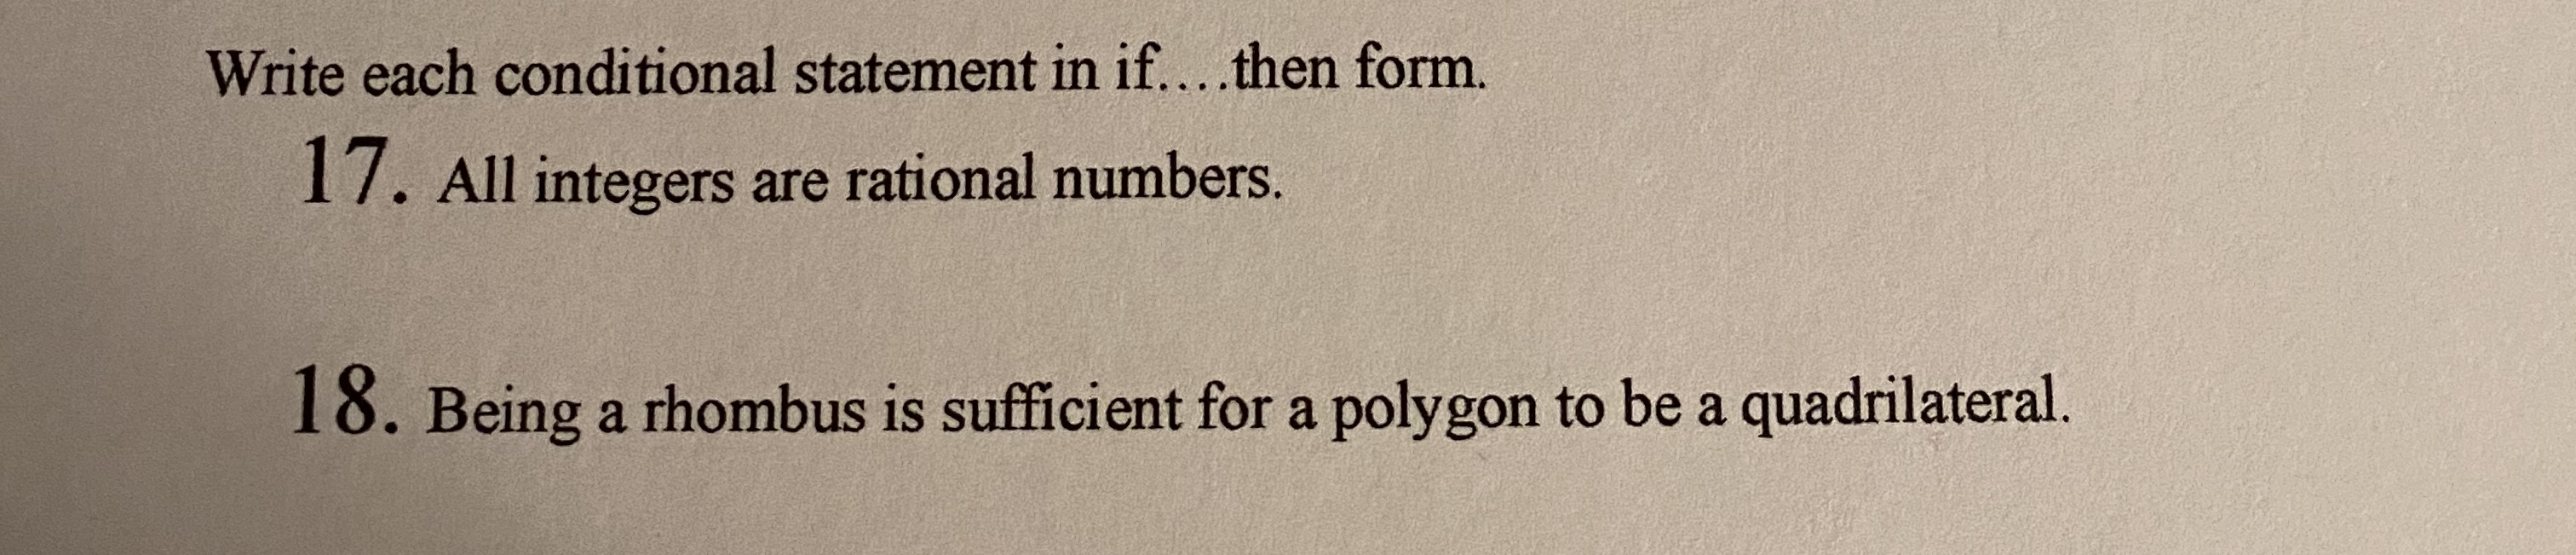 Write each conditional statement in if....then form. 17. All integers are rational numbers. 18. Being a rhombus is sufficient for a polygon to be a quadrilateral.